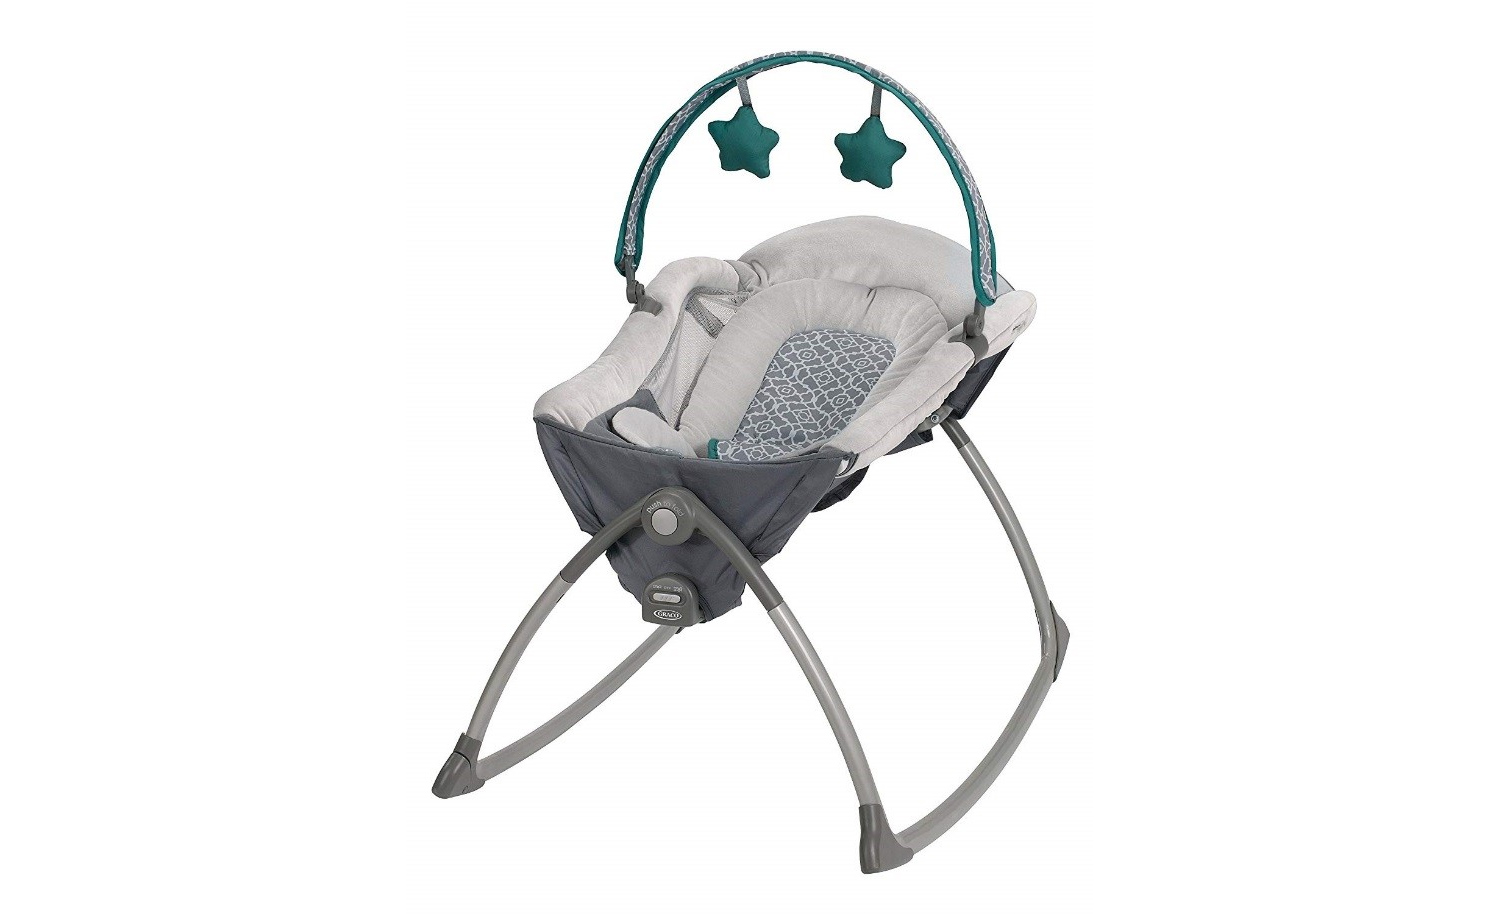 More than 165,000 infant incline sleepers recalled due to risk of suffocation